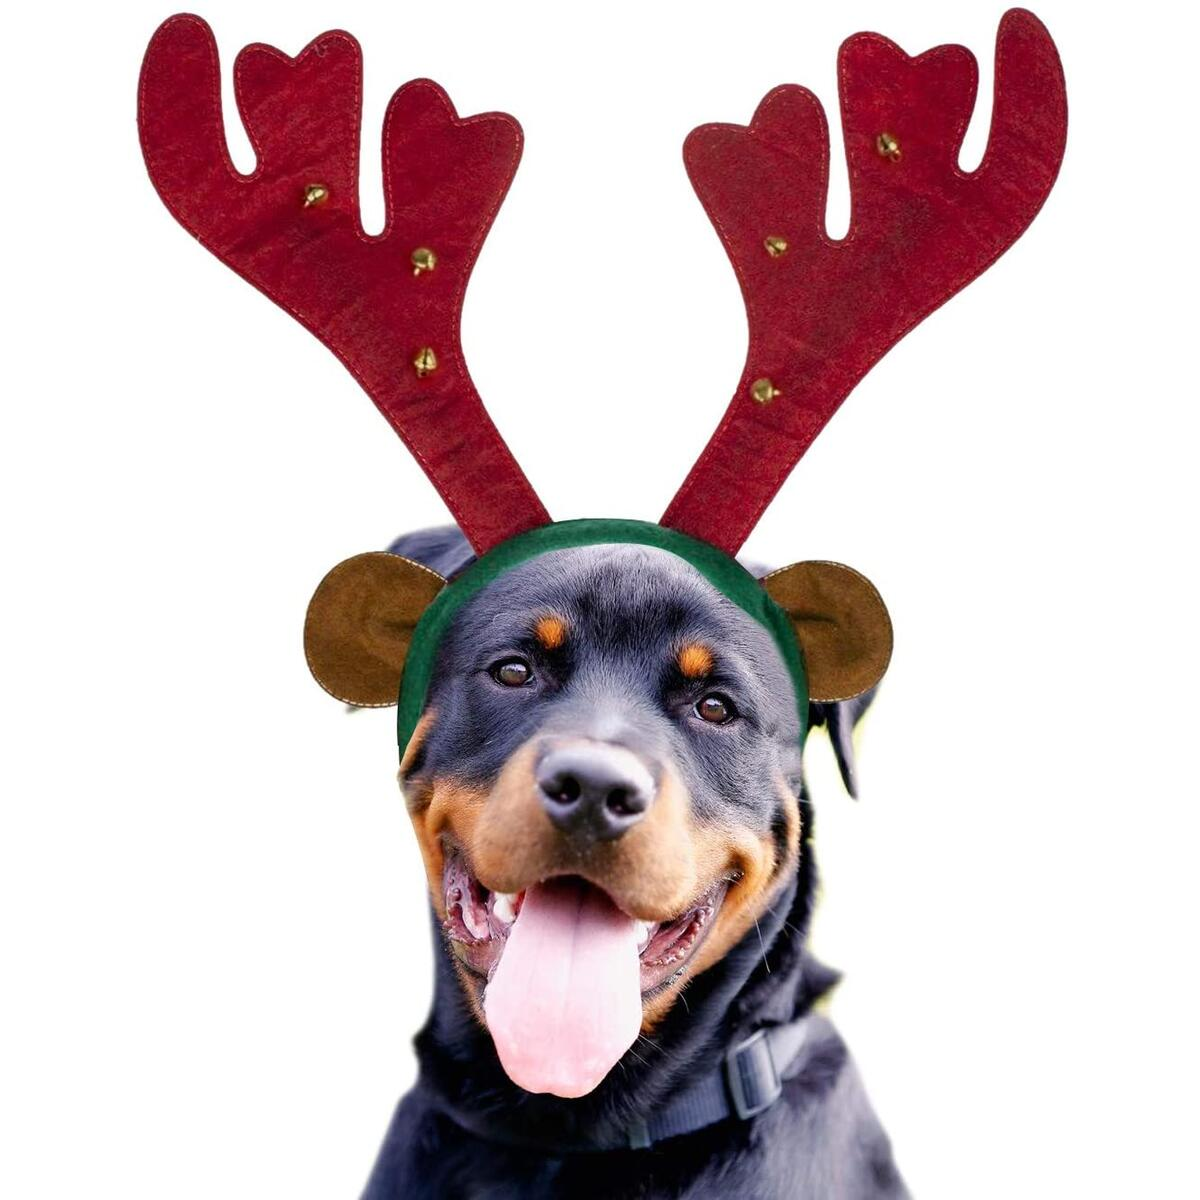 Pawz World Dog Reindeer Antlers Headband Costume - Perfect Dog Christmas Outfit for Holiday Family Photo